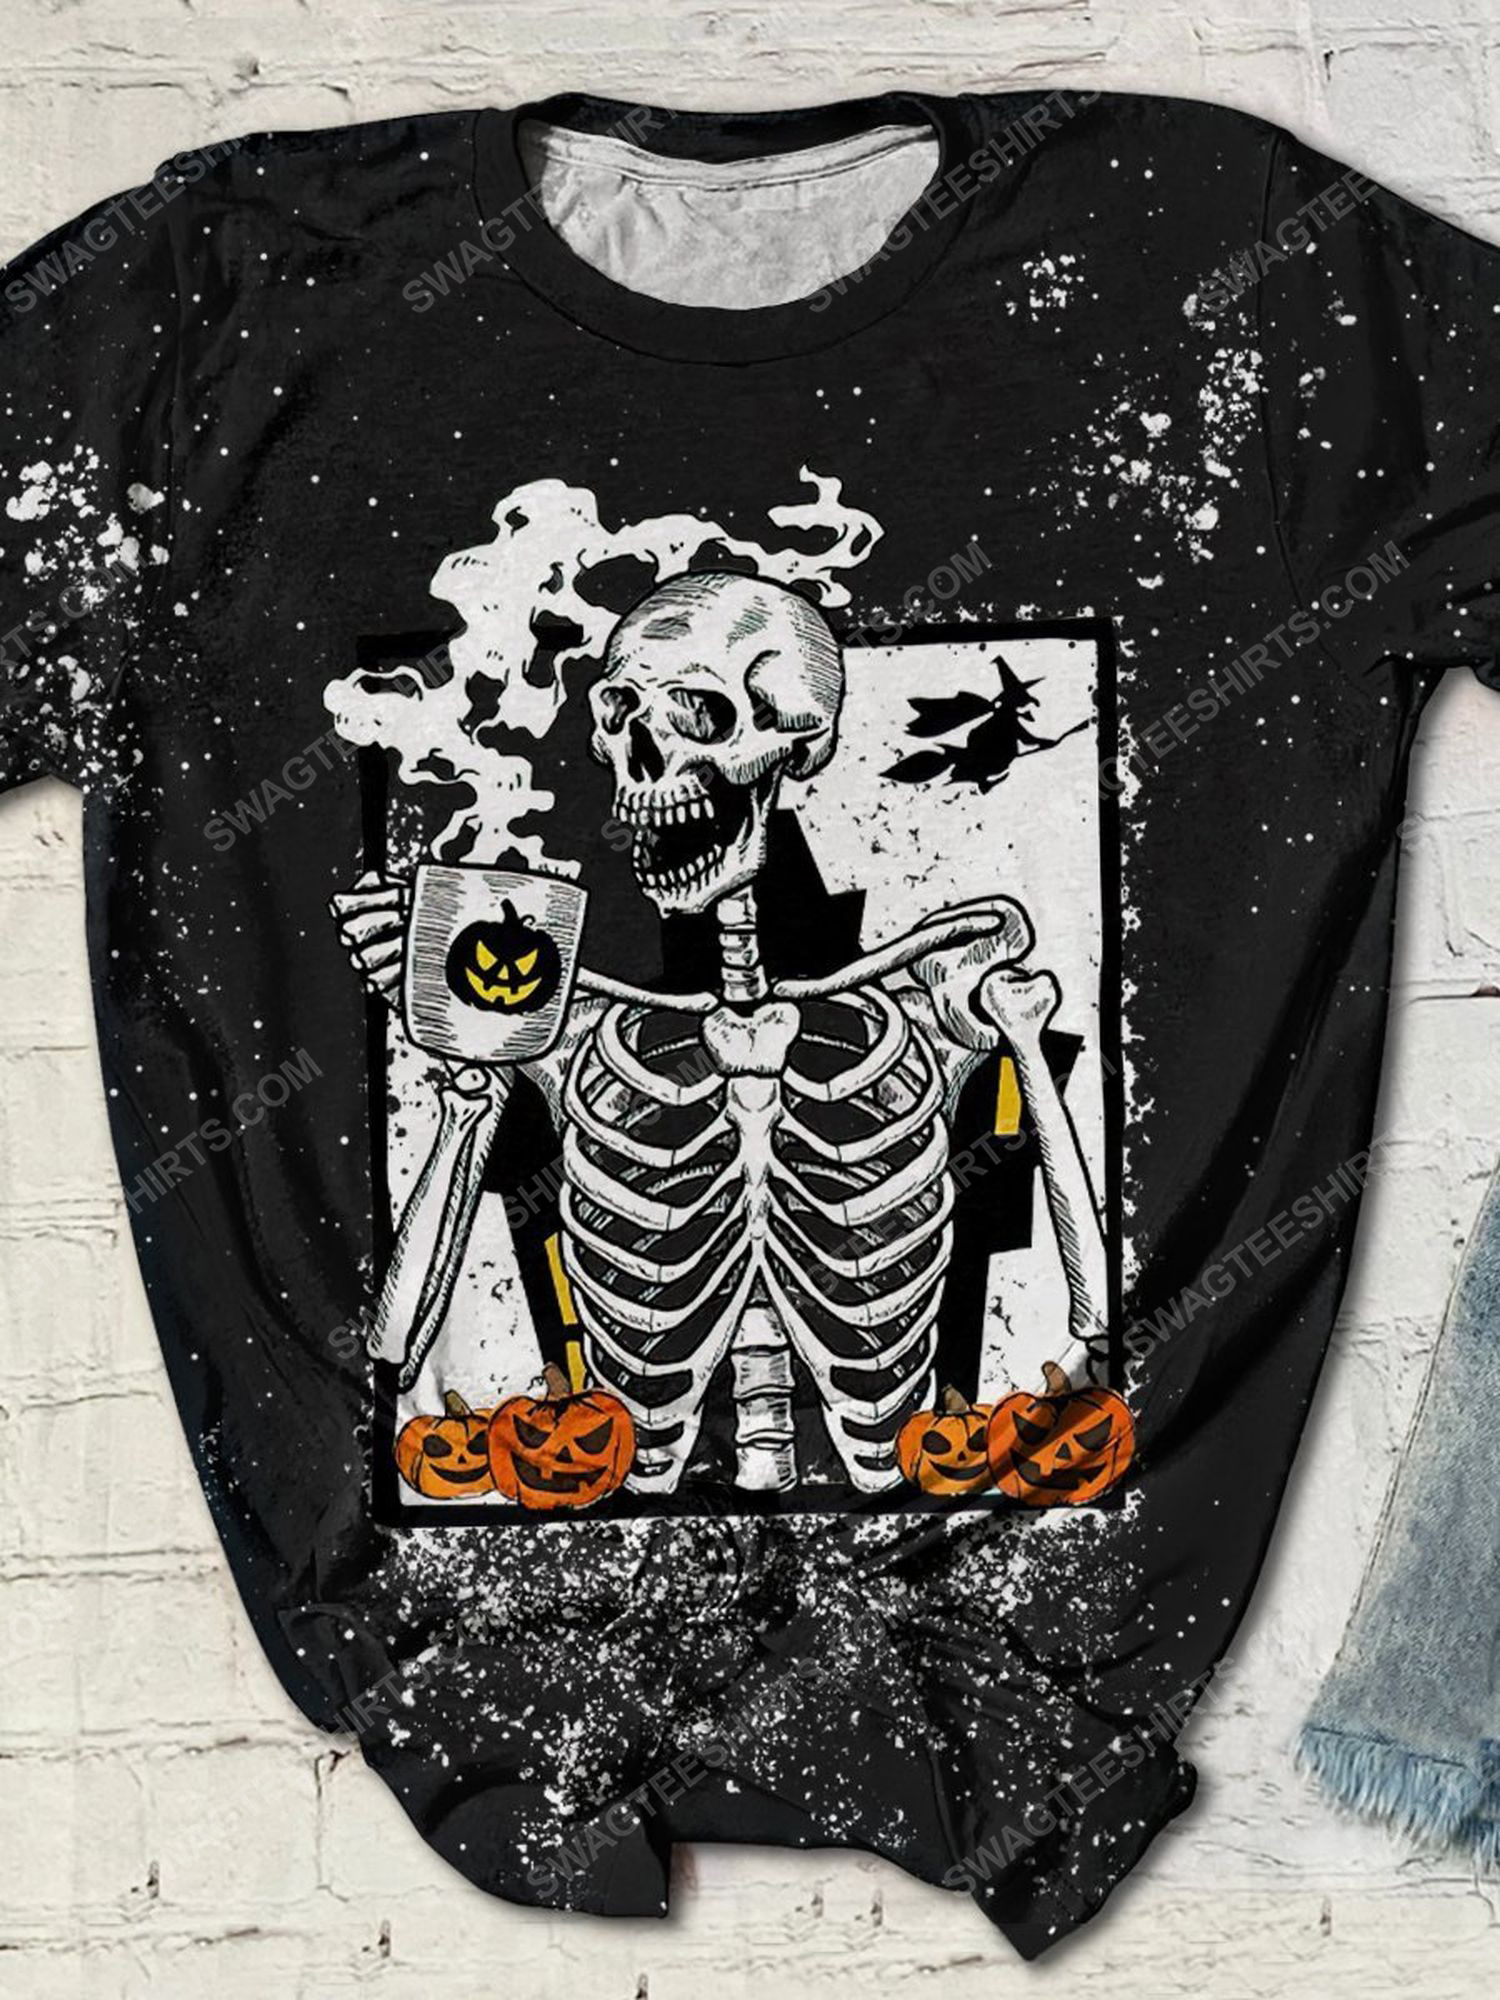 Halloween skull and coffee bleached shirt 1 - Copy (3)